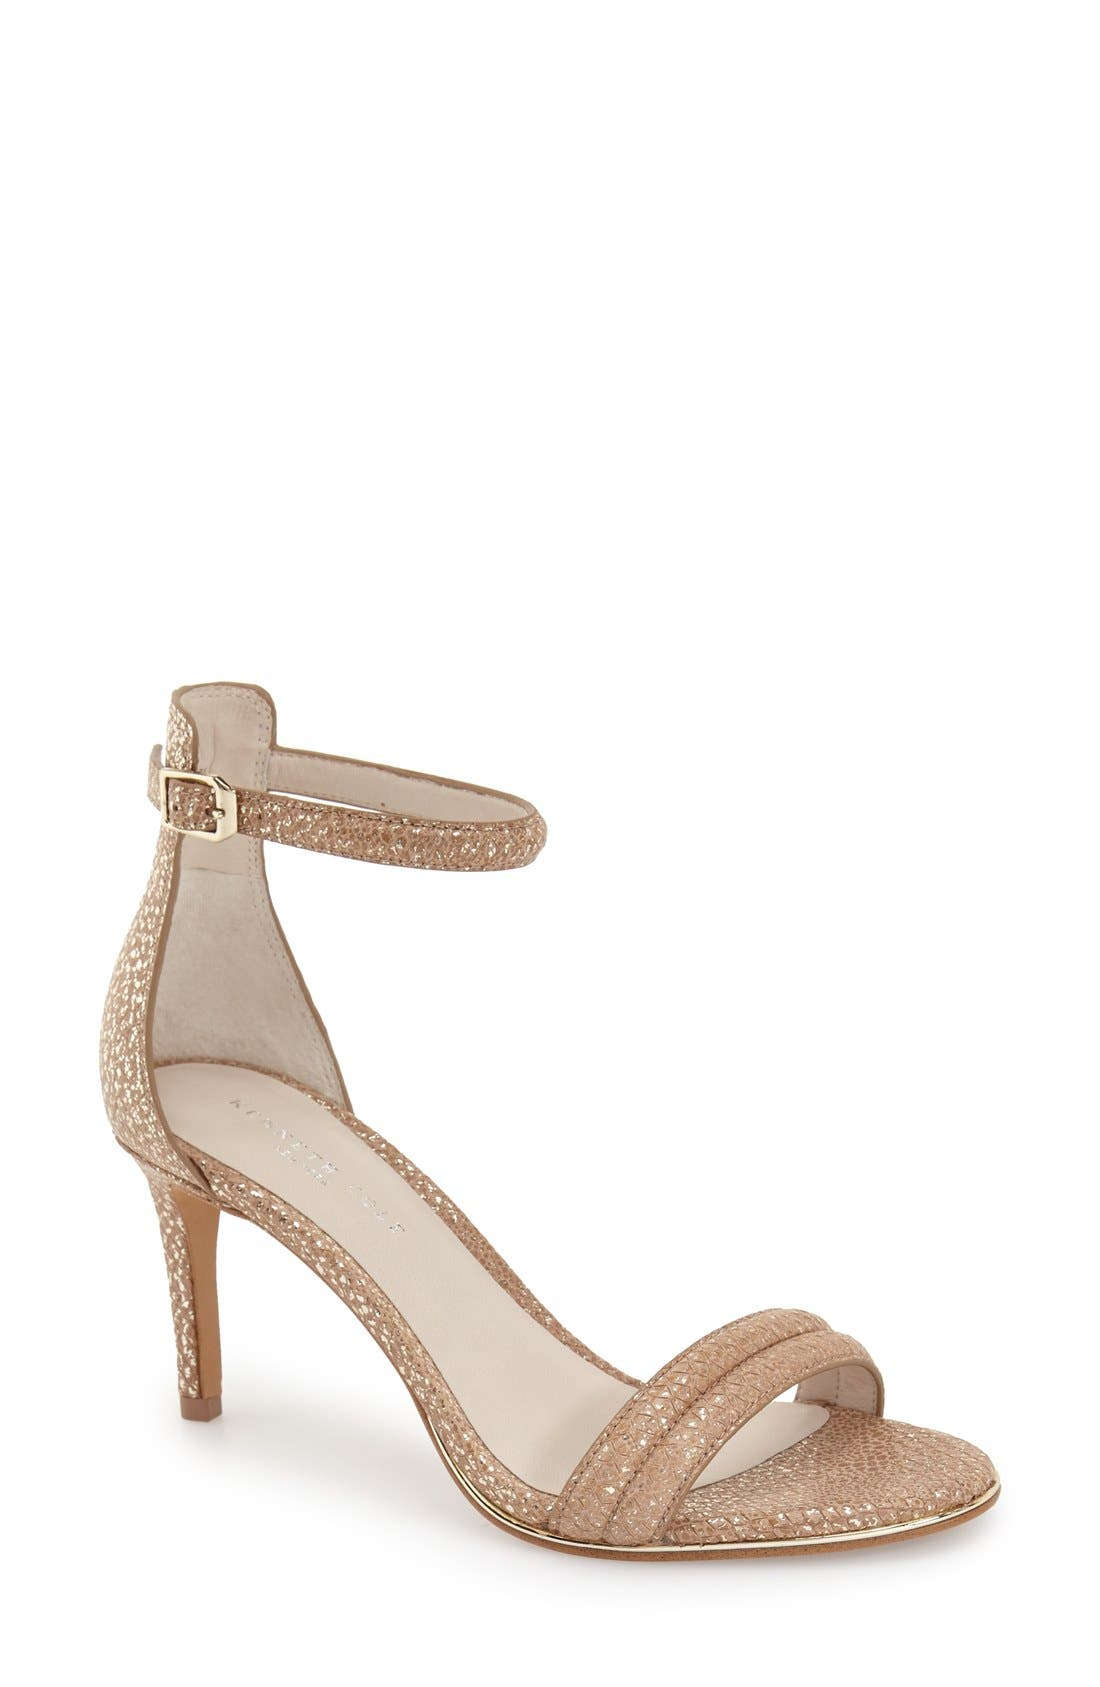 'Mallory' Ankle Strap Sandal,                         Main,                         color, Rose Gold